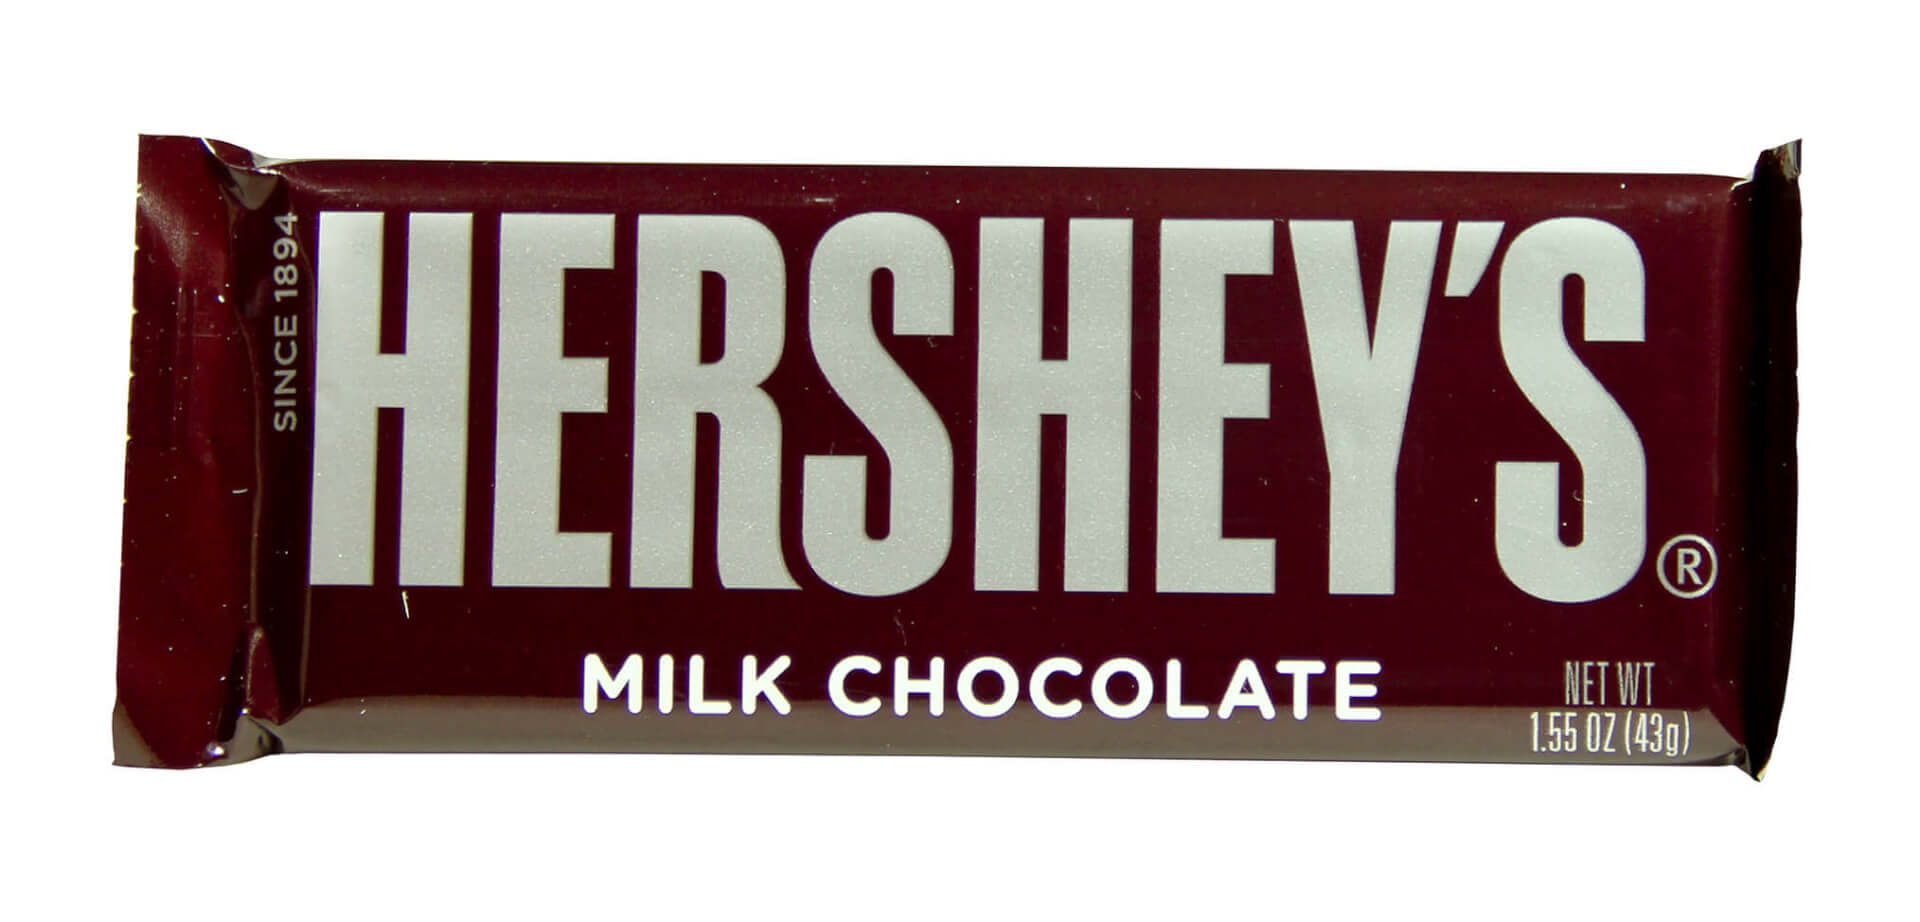 The sweet story of Milton S. Hershey